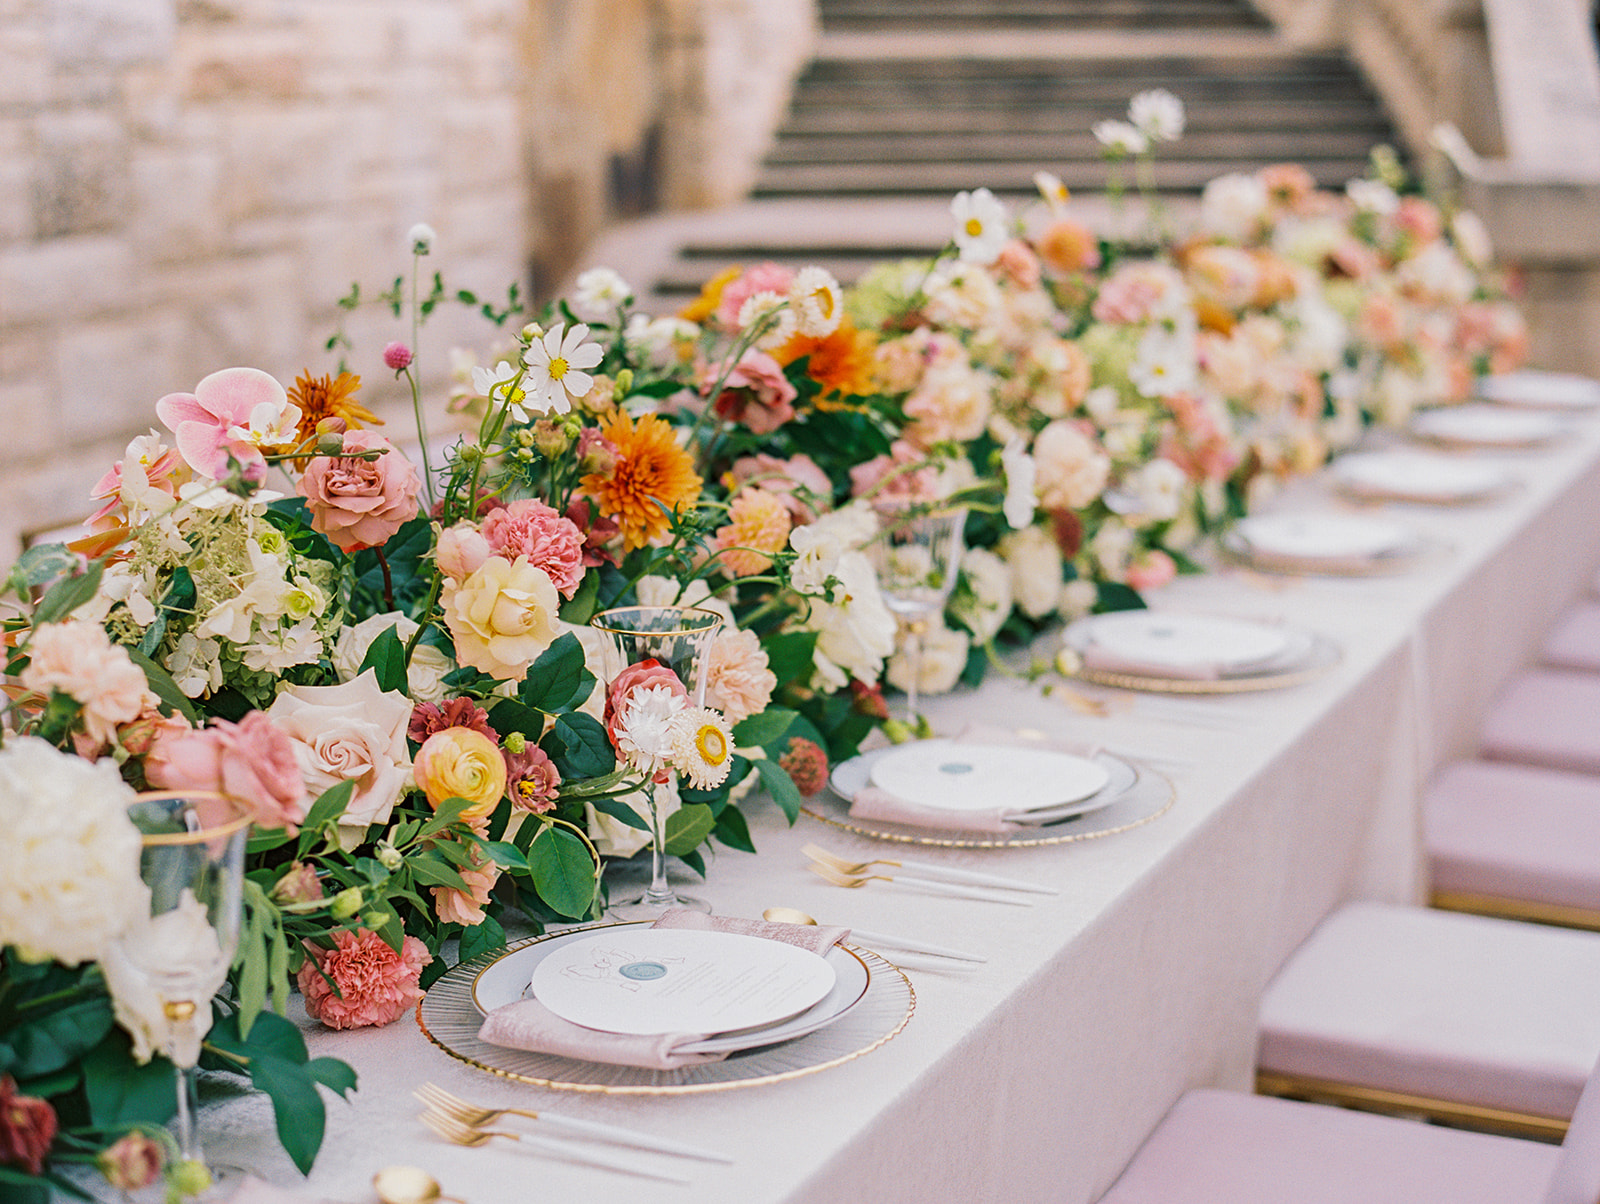 Colorful wedding flower table runner | Alexa Kay Events